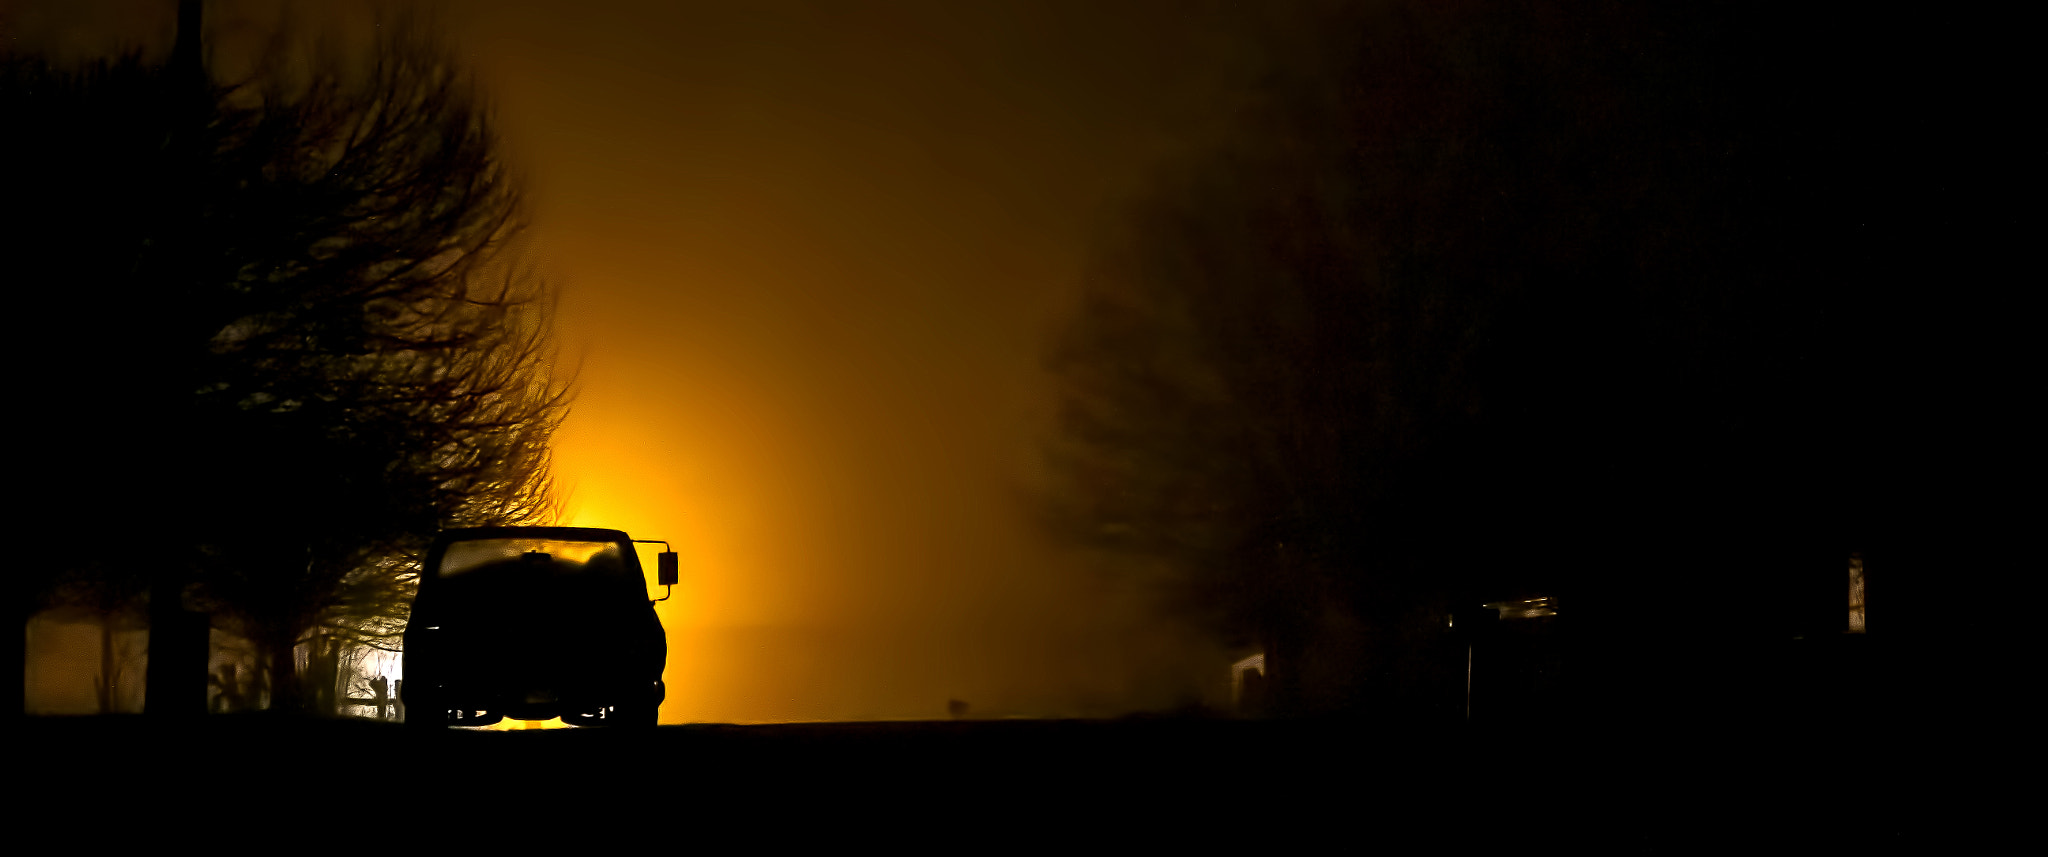 Photograph Truck in the fog by Jonathan Goforth on 500px